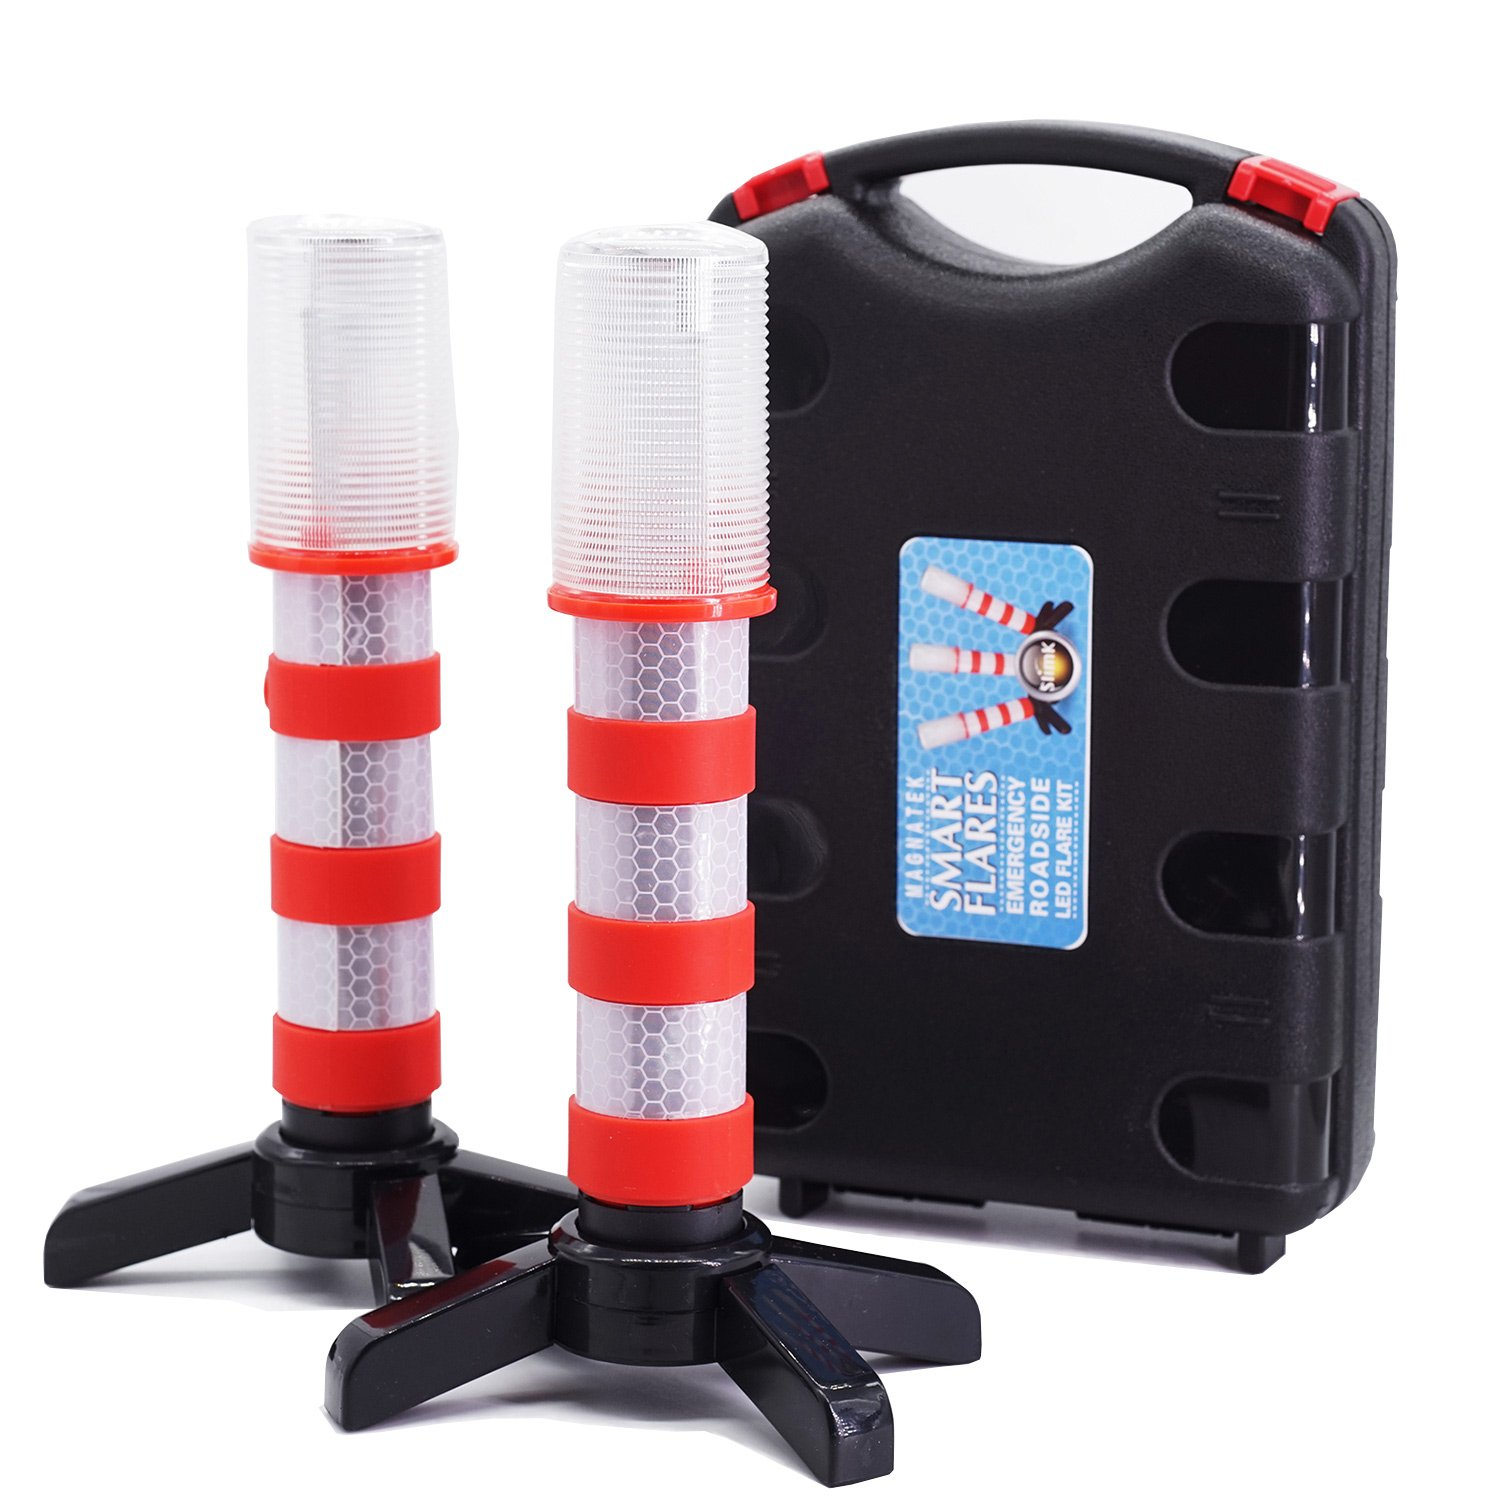 2 LED Emergency Road Flares Red Roadside Beacon Safety Strobe Light Warning Signal Alert Magnetic Base and Upright Stand in Solid Storage case for Car Marine Vehicles Trucks by SlimK